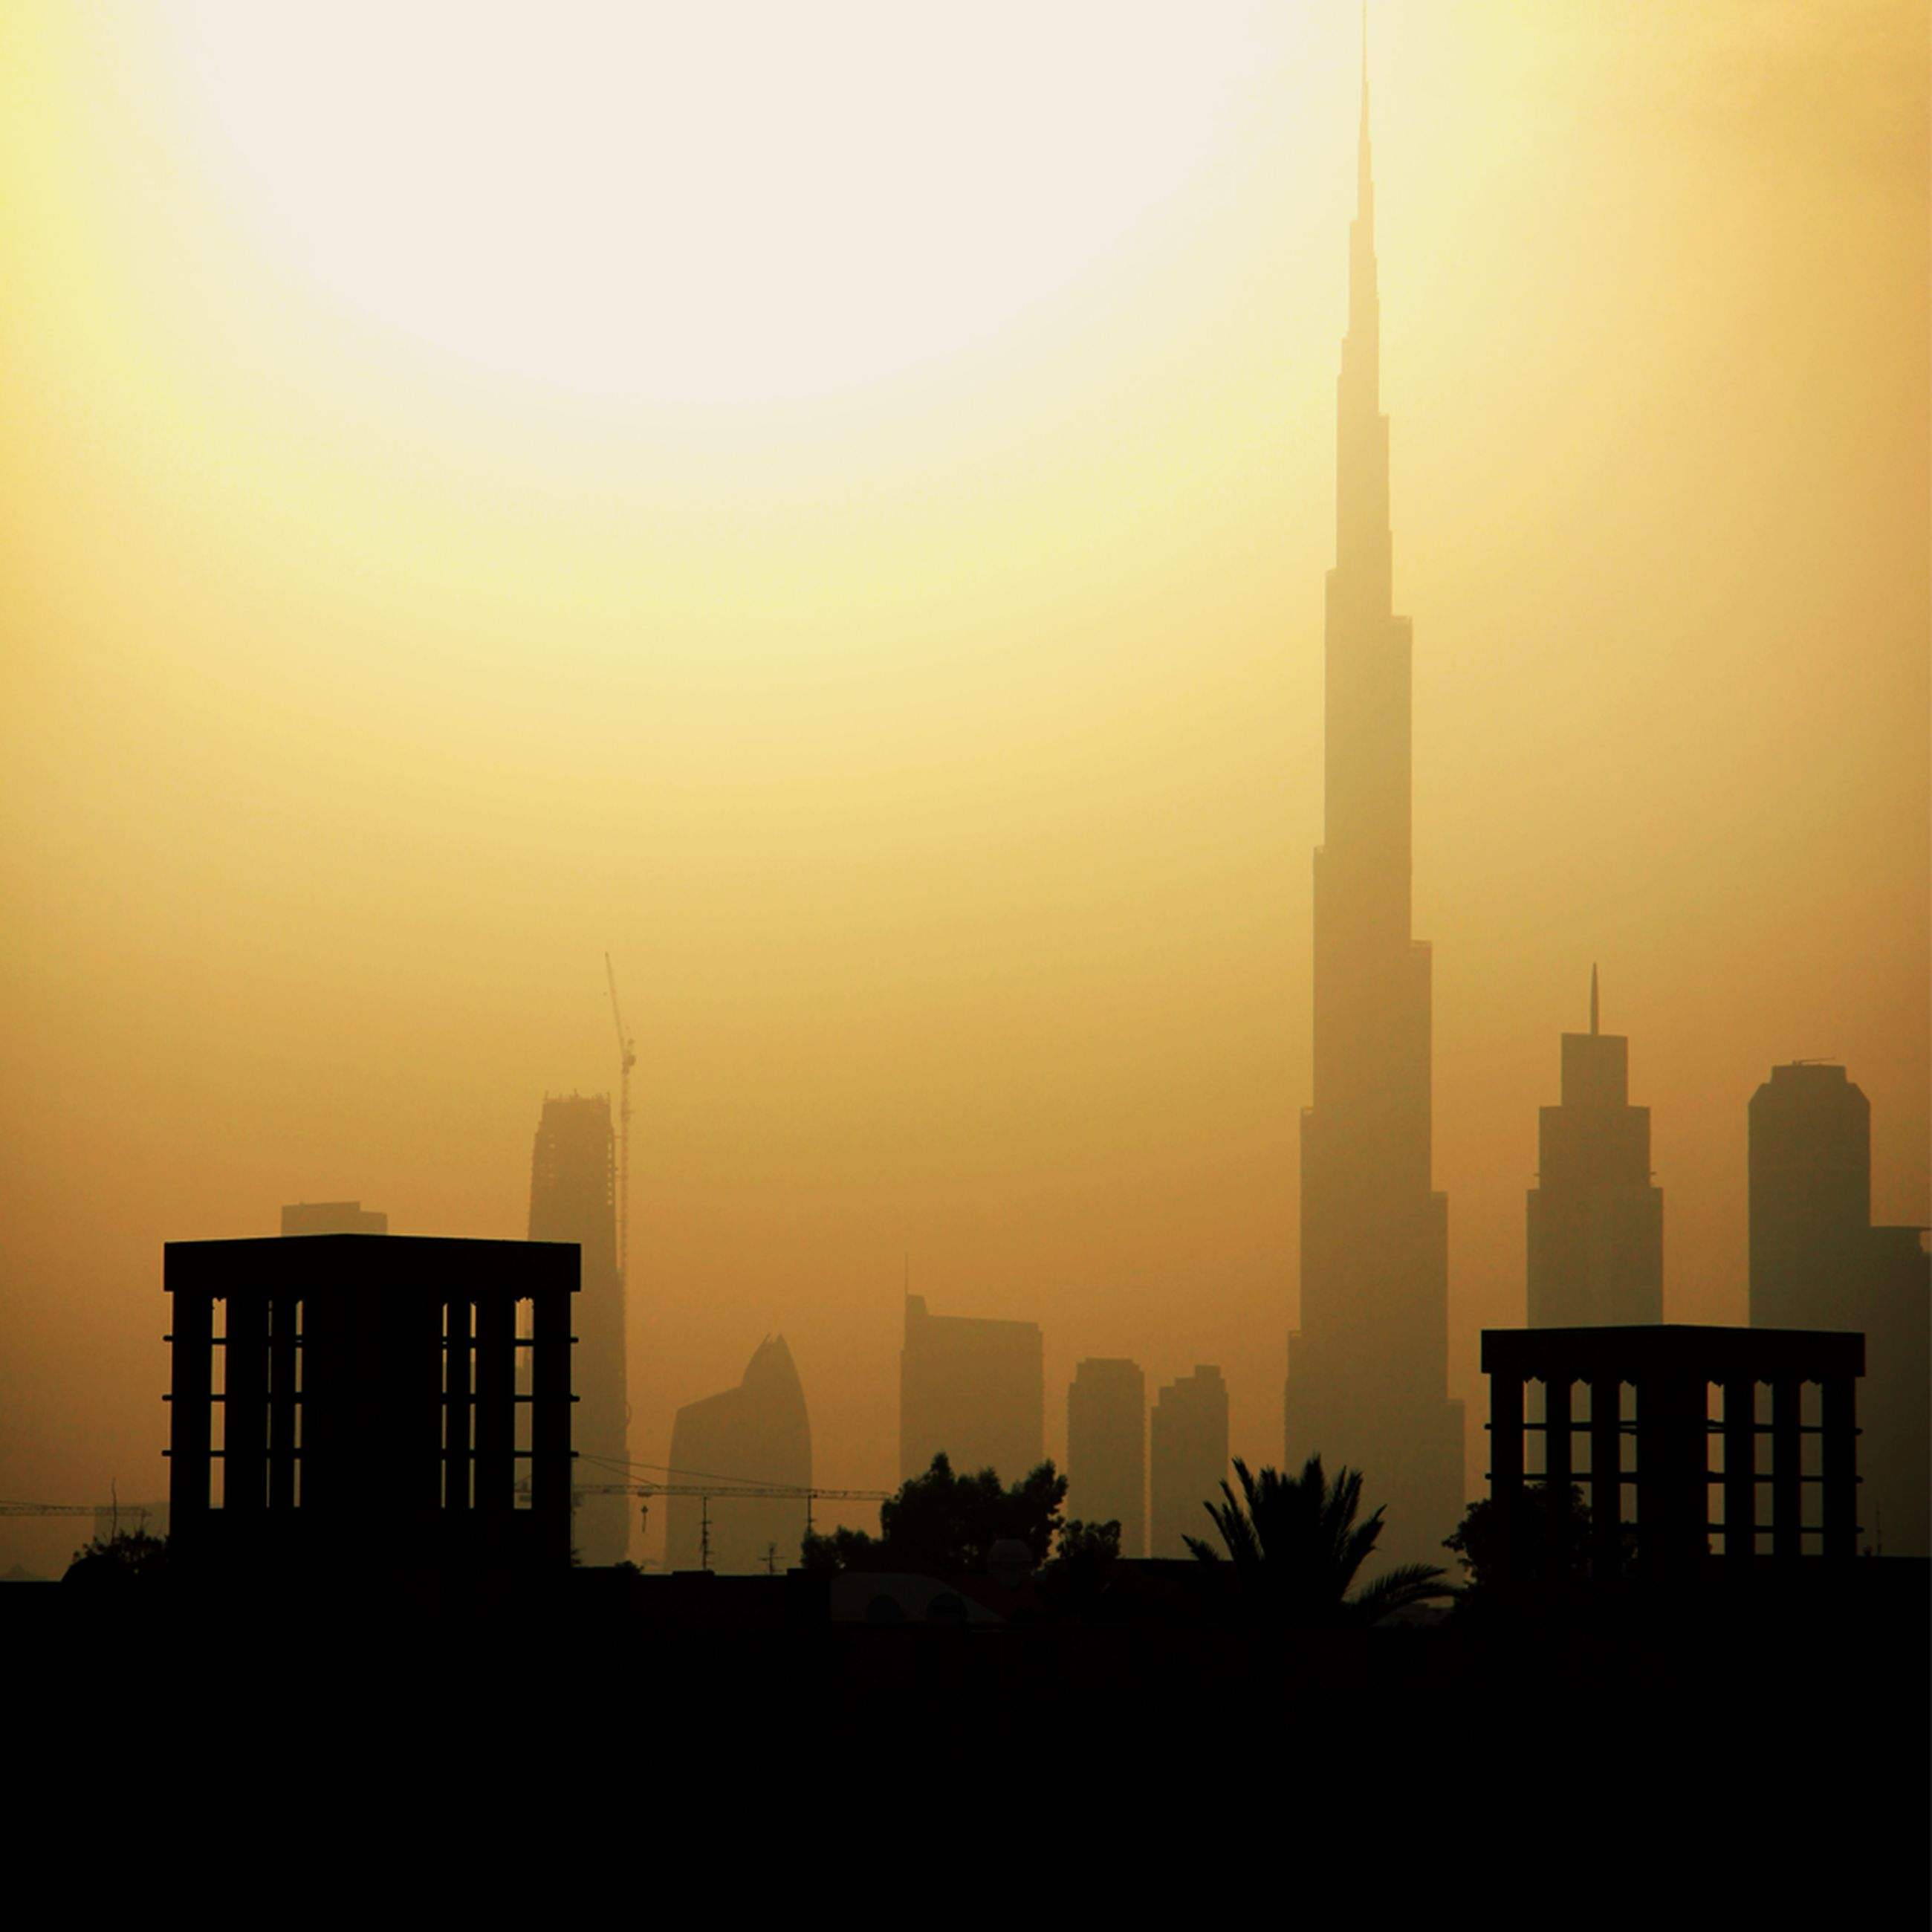 architecture, building exterior, sunset, built structure, silhouette, sun, city, orange color, tower, skyscraper, sky, tall - high, building, copy space, sunlight, clear sky, outdoors, no people, urban skyline, modern